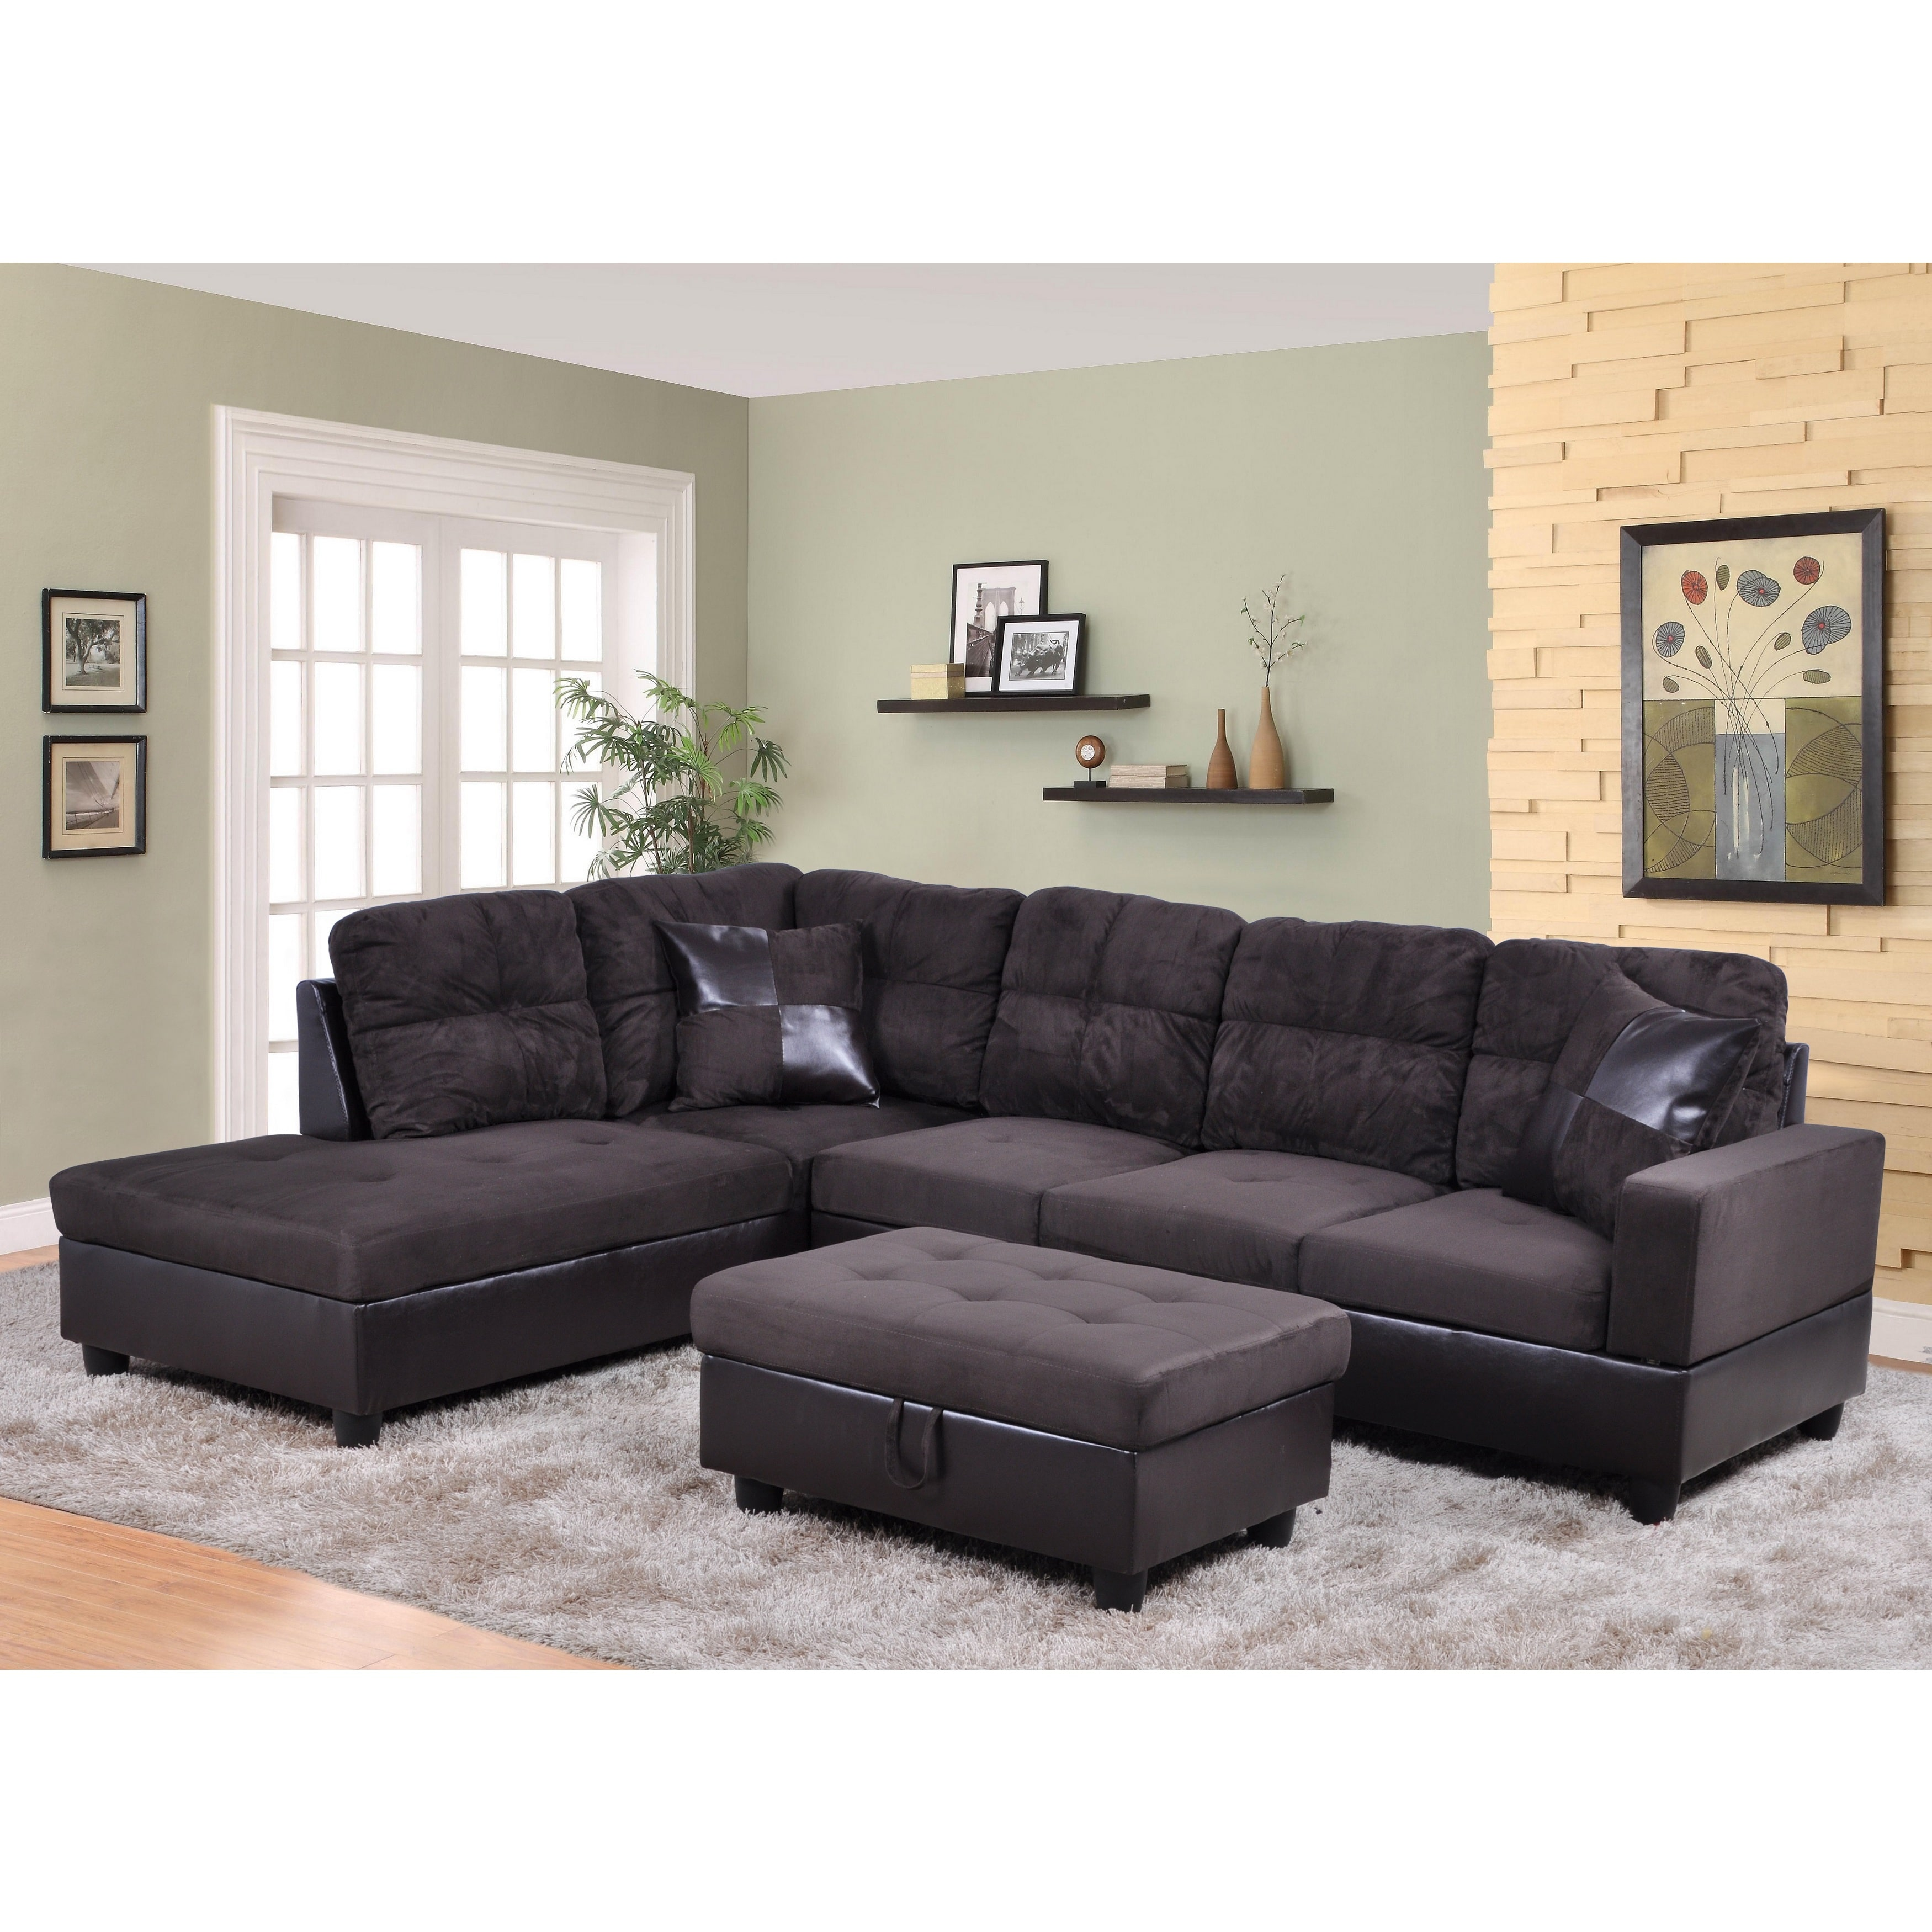 lifestyle furniture lf105a avellino left hand facing sectional sofa dark chocolate 35 x 103 5 x 74 5 in